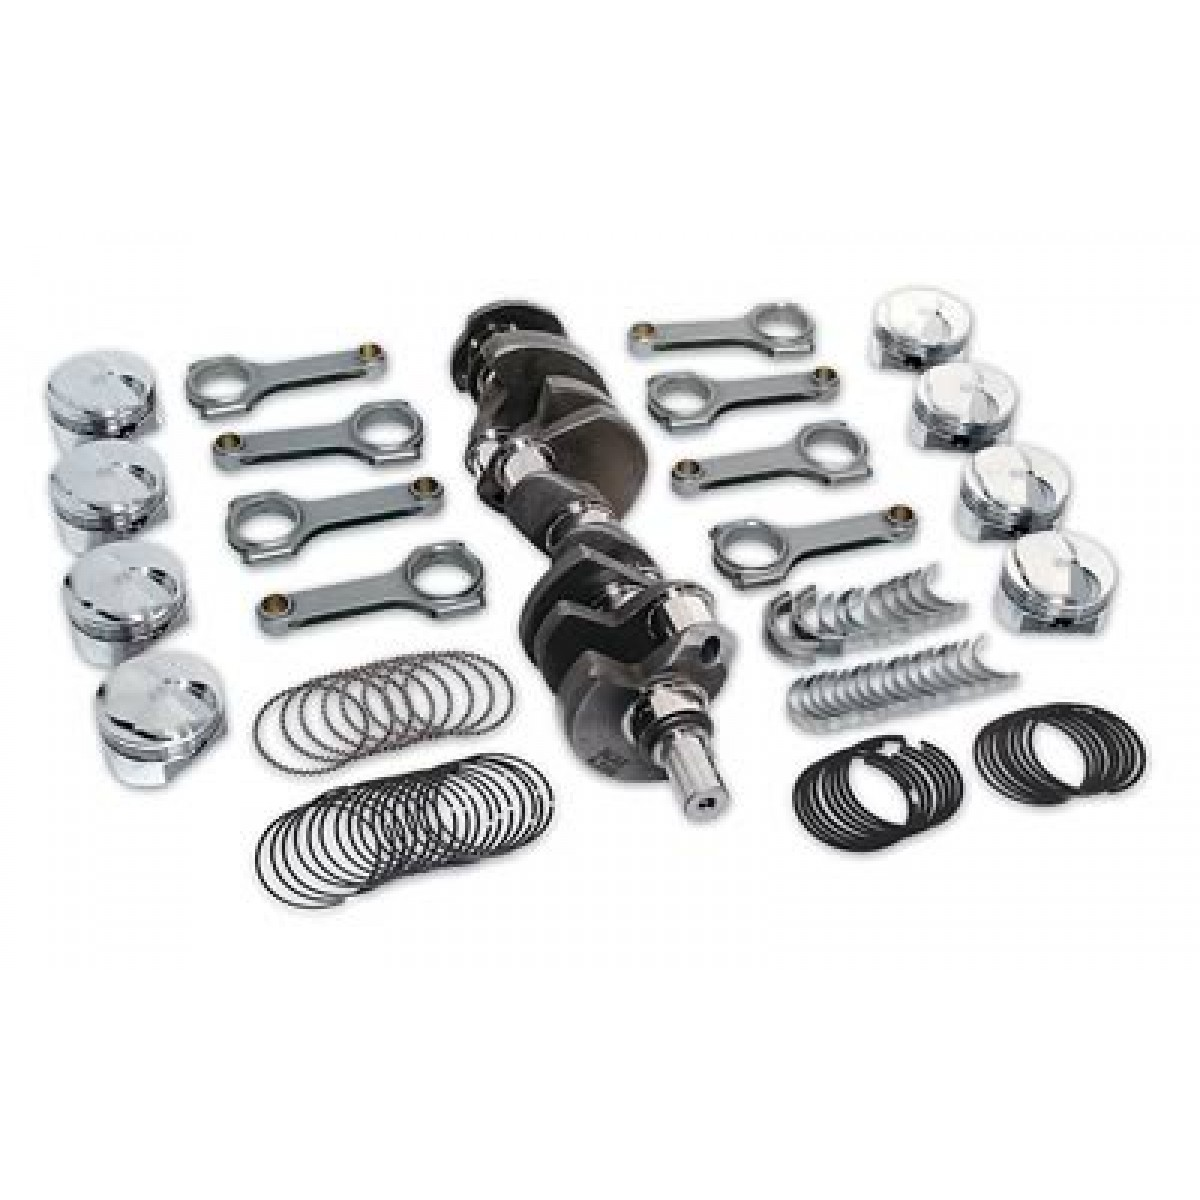 Chevy LS 346ci to 395ci SCAT STROKER KIT 24x Reluctor -3 5cc